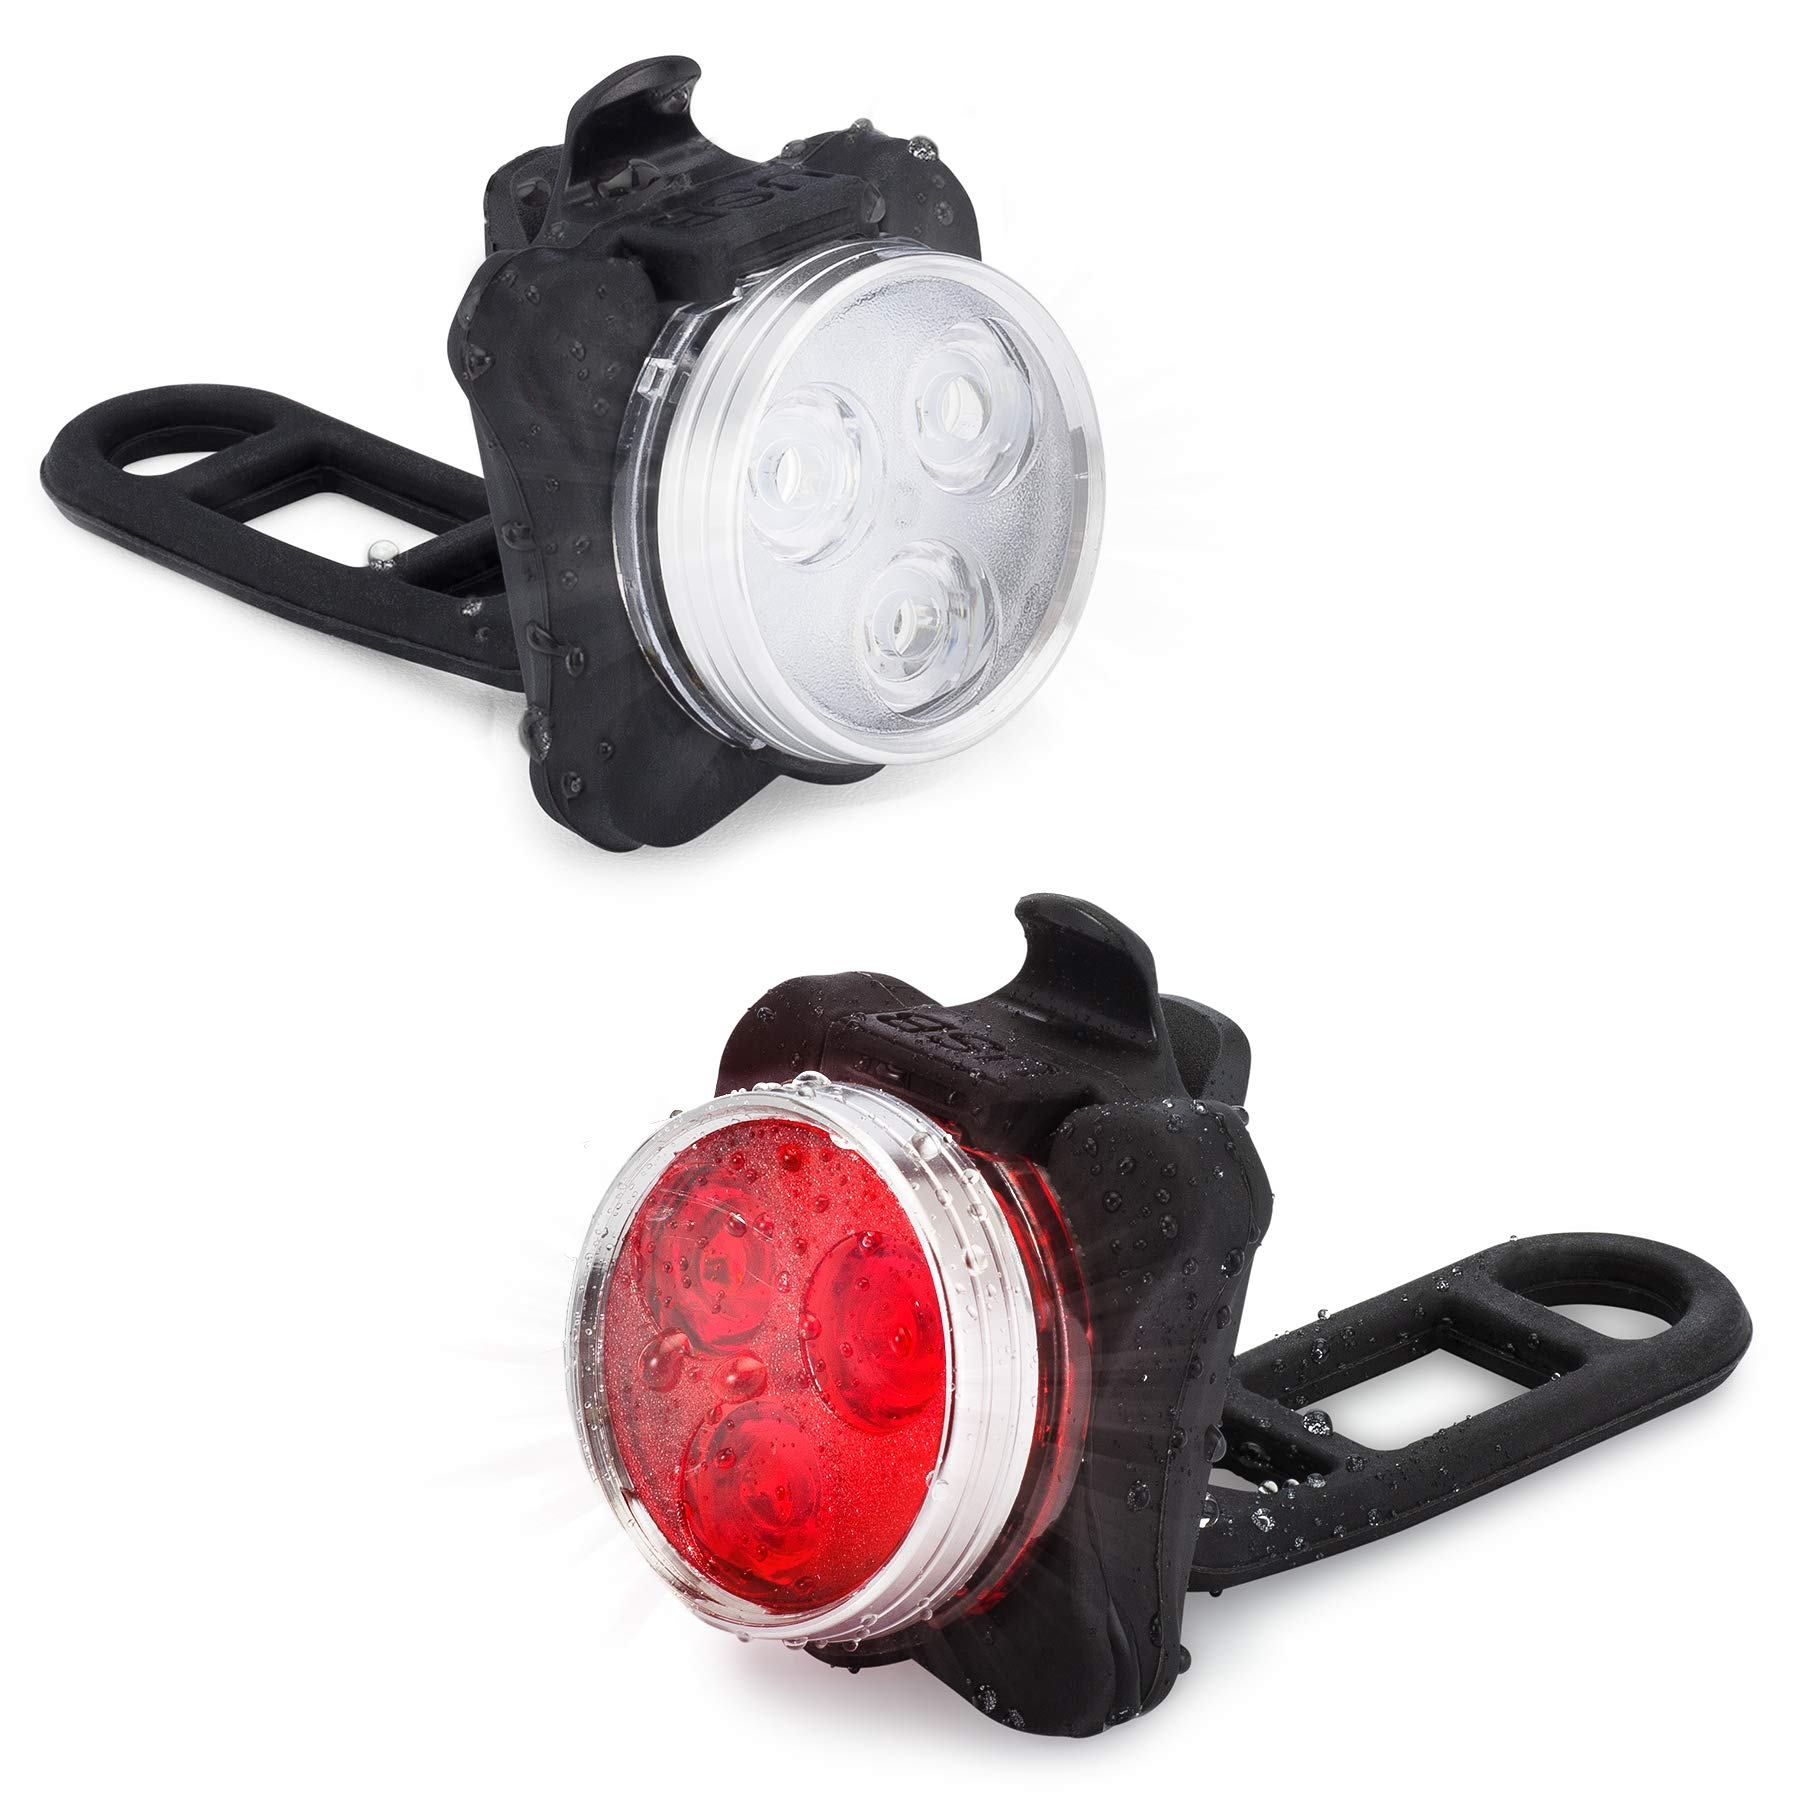 Vont USB Rechargeable Bike Light Set, Bright Front and Back Illumination, The Only LED Bicycle Light You'll Need. Super Long Battery Life, IPX4 Water Resistant, Lights, Accessories, 4 Different Modes